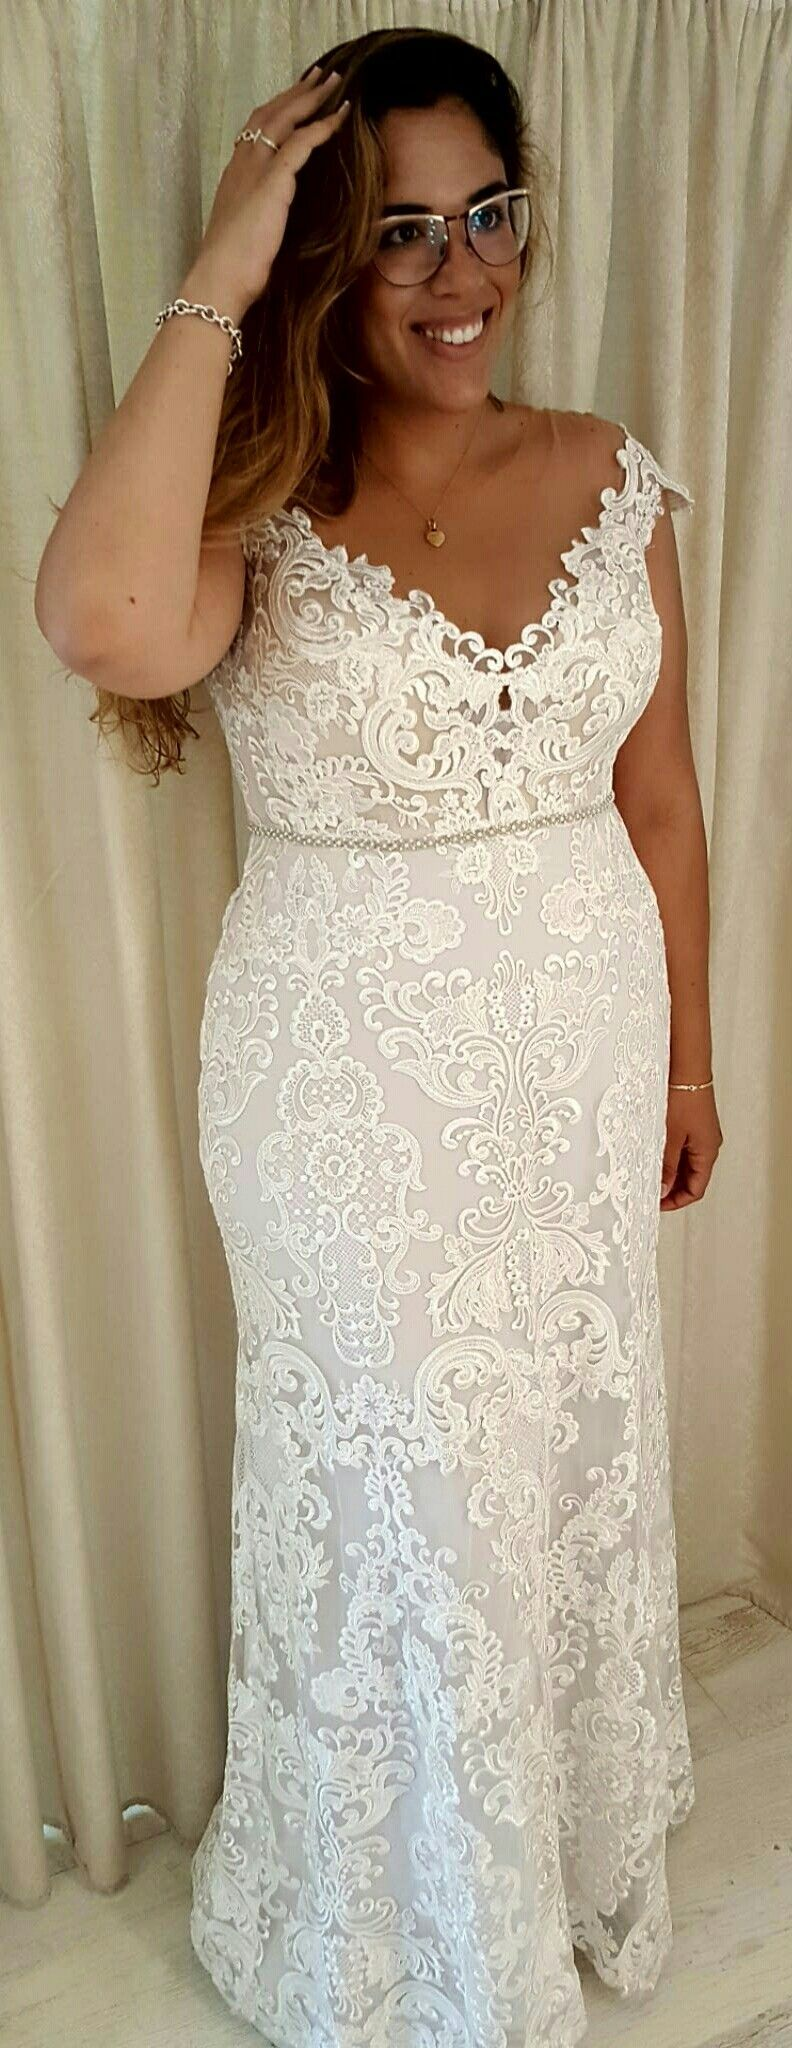 Plus size white wedding dresses  Plus size bride in Adel lace mermaid gown Studio Levana